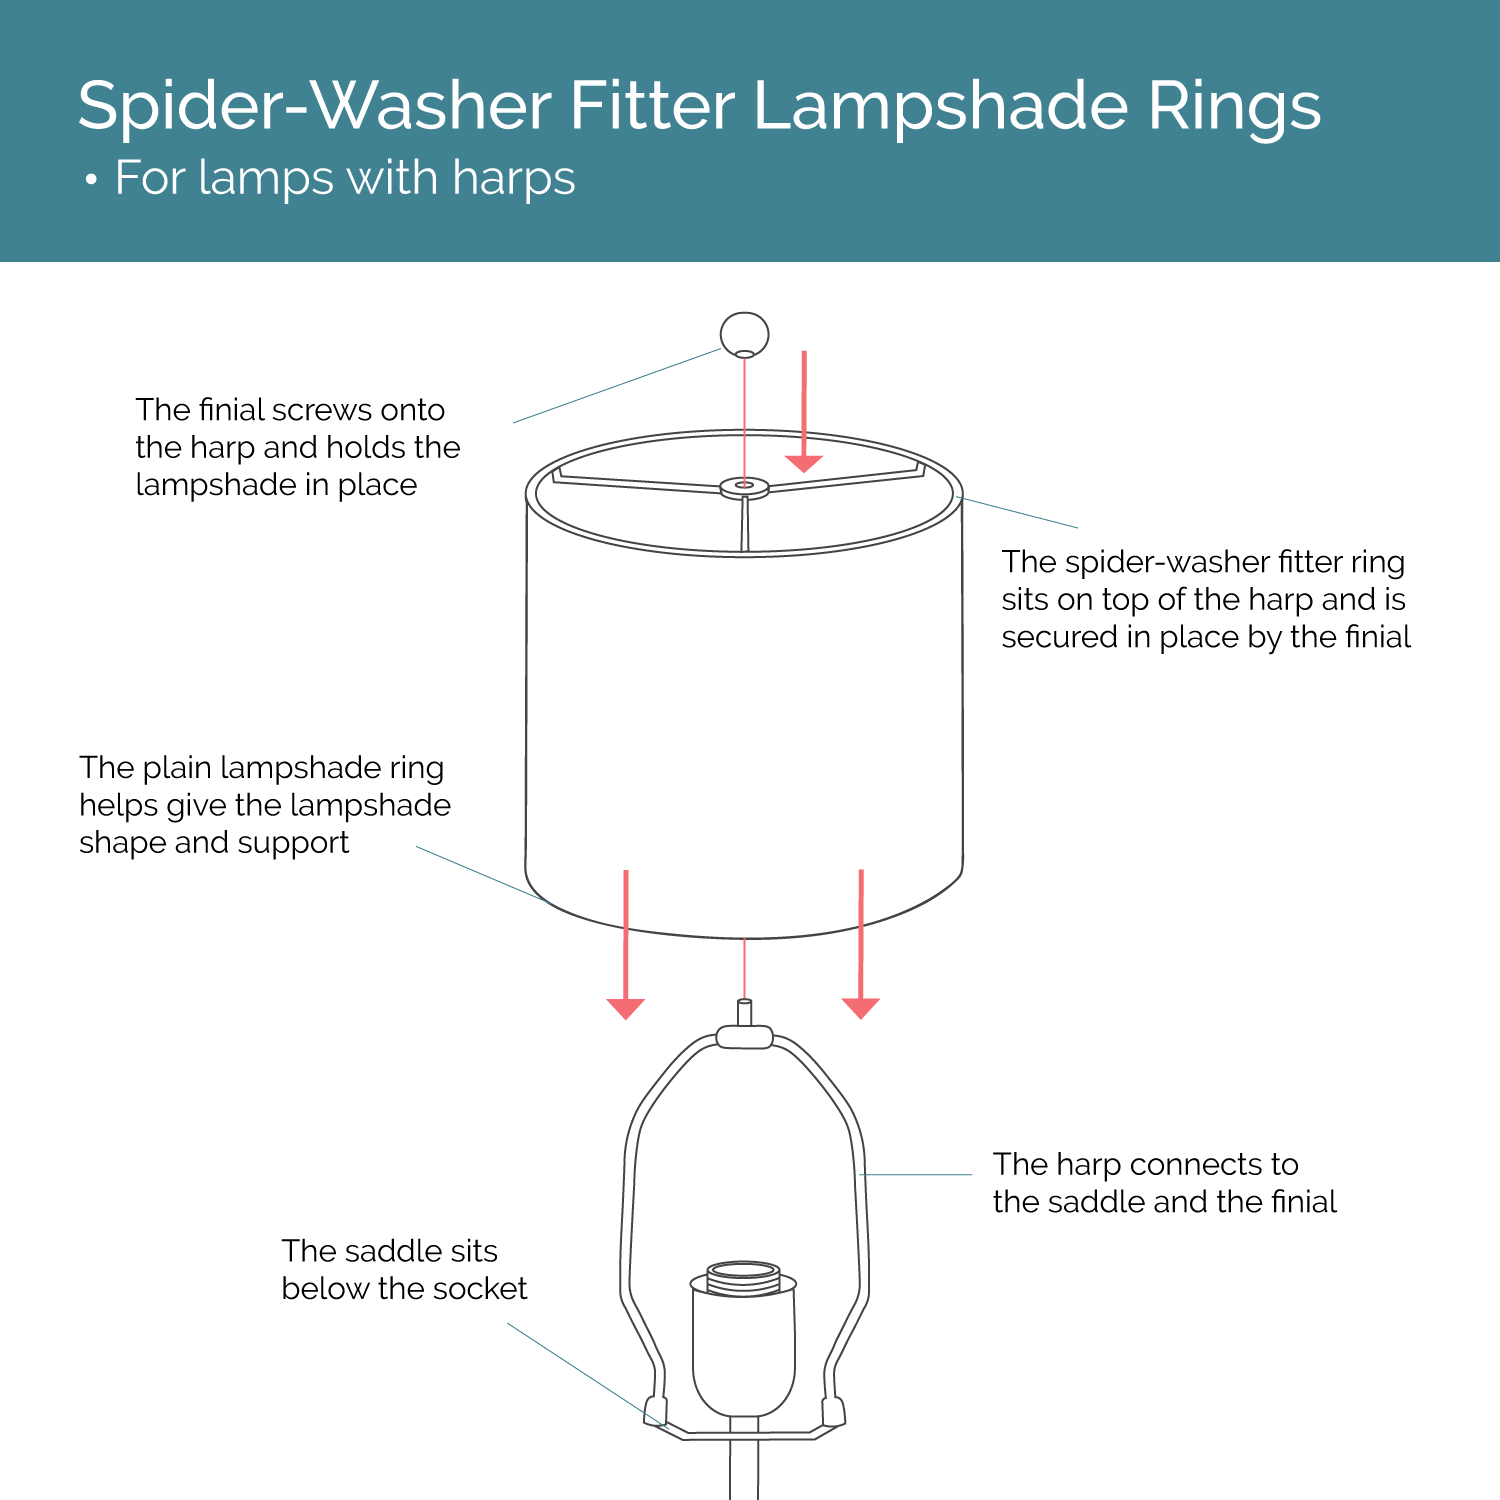 Spiderwasher fitter lampshade ring set washer spider and wire how to make a lampshade using spiderwasher fitter lampshade rings via i like that greentooth